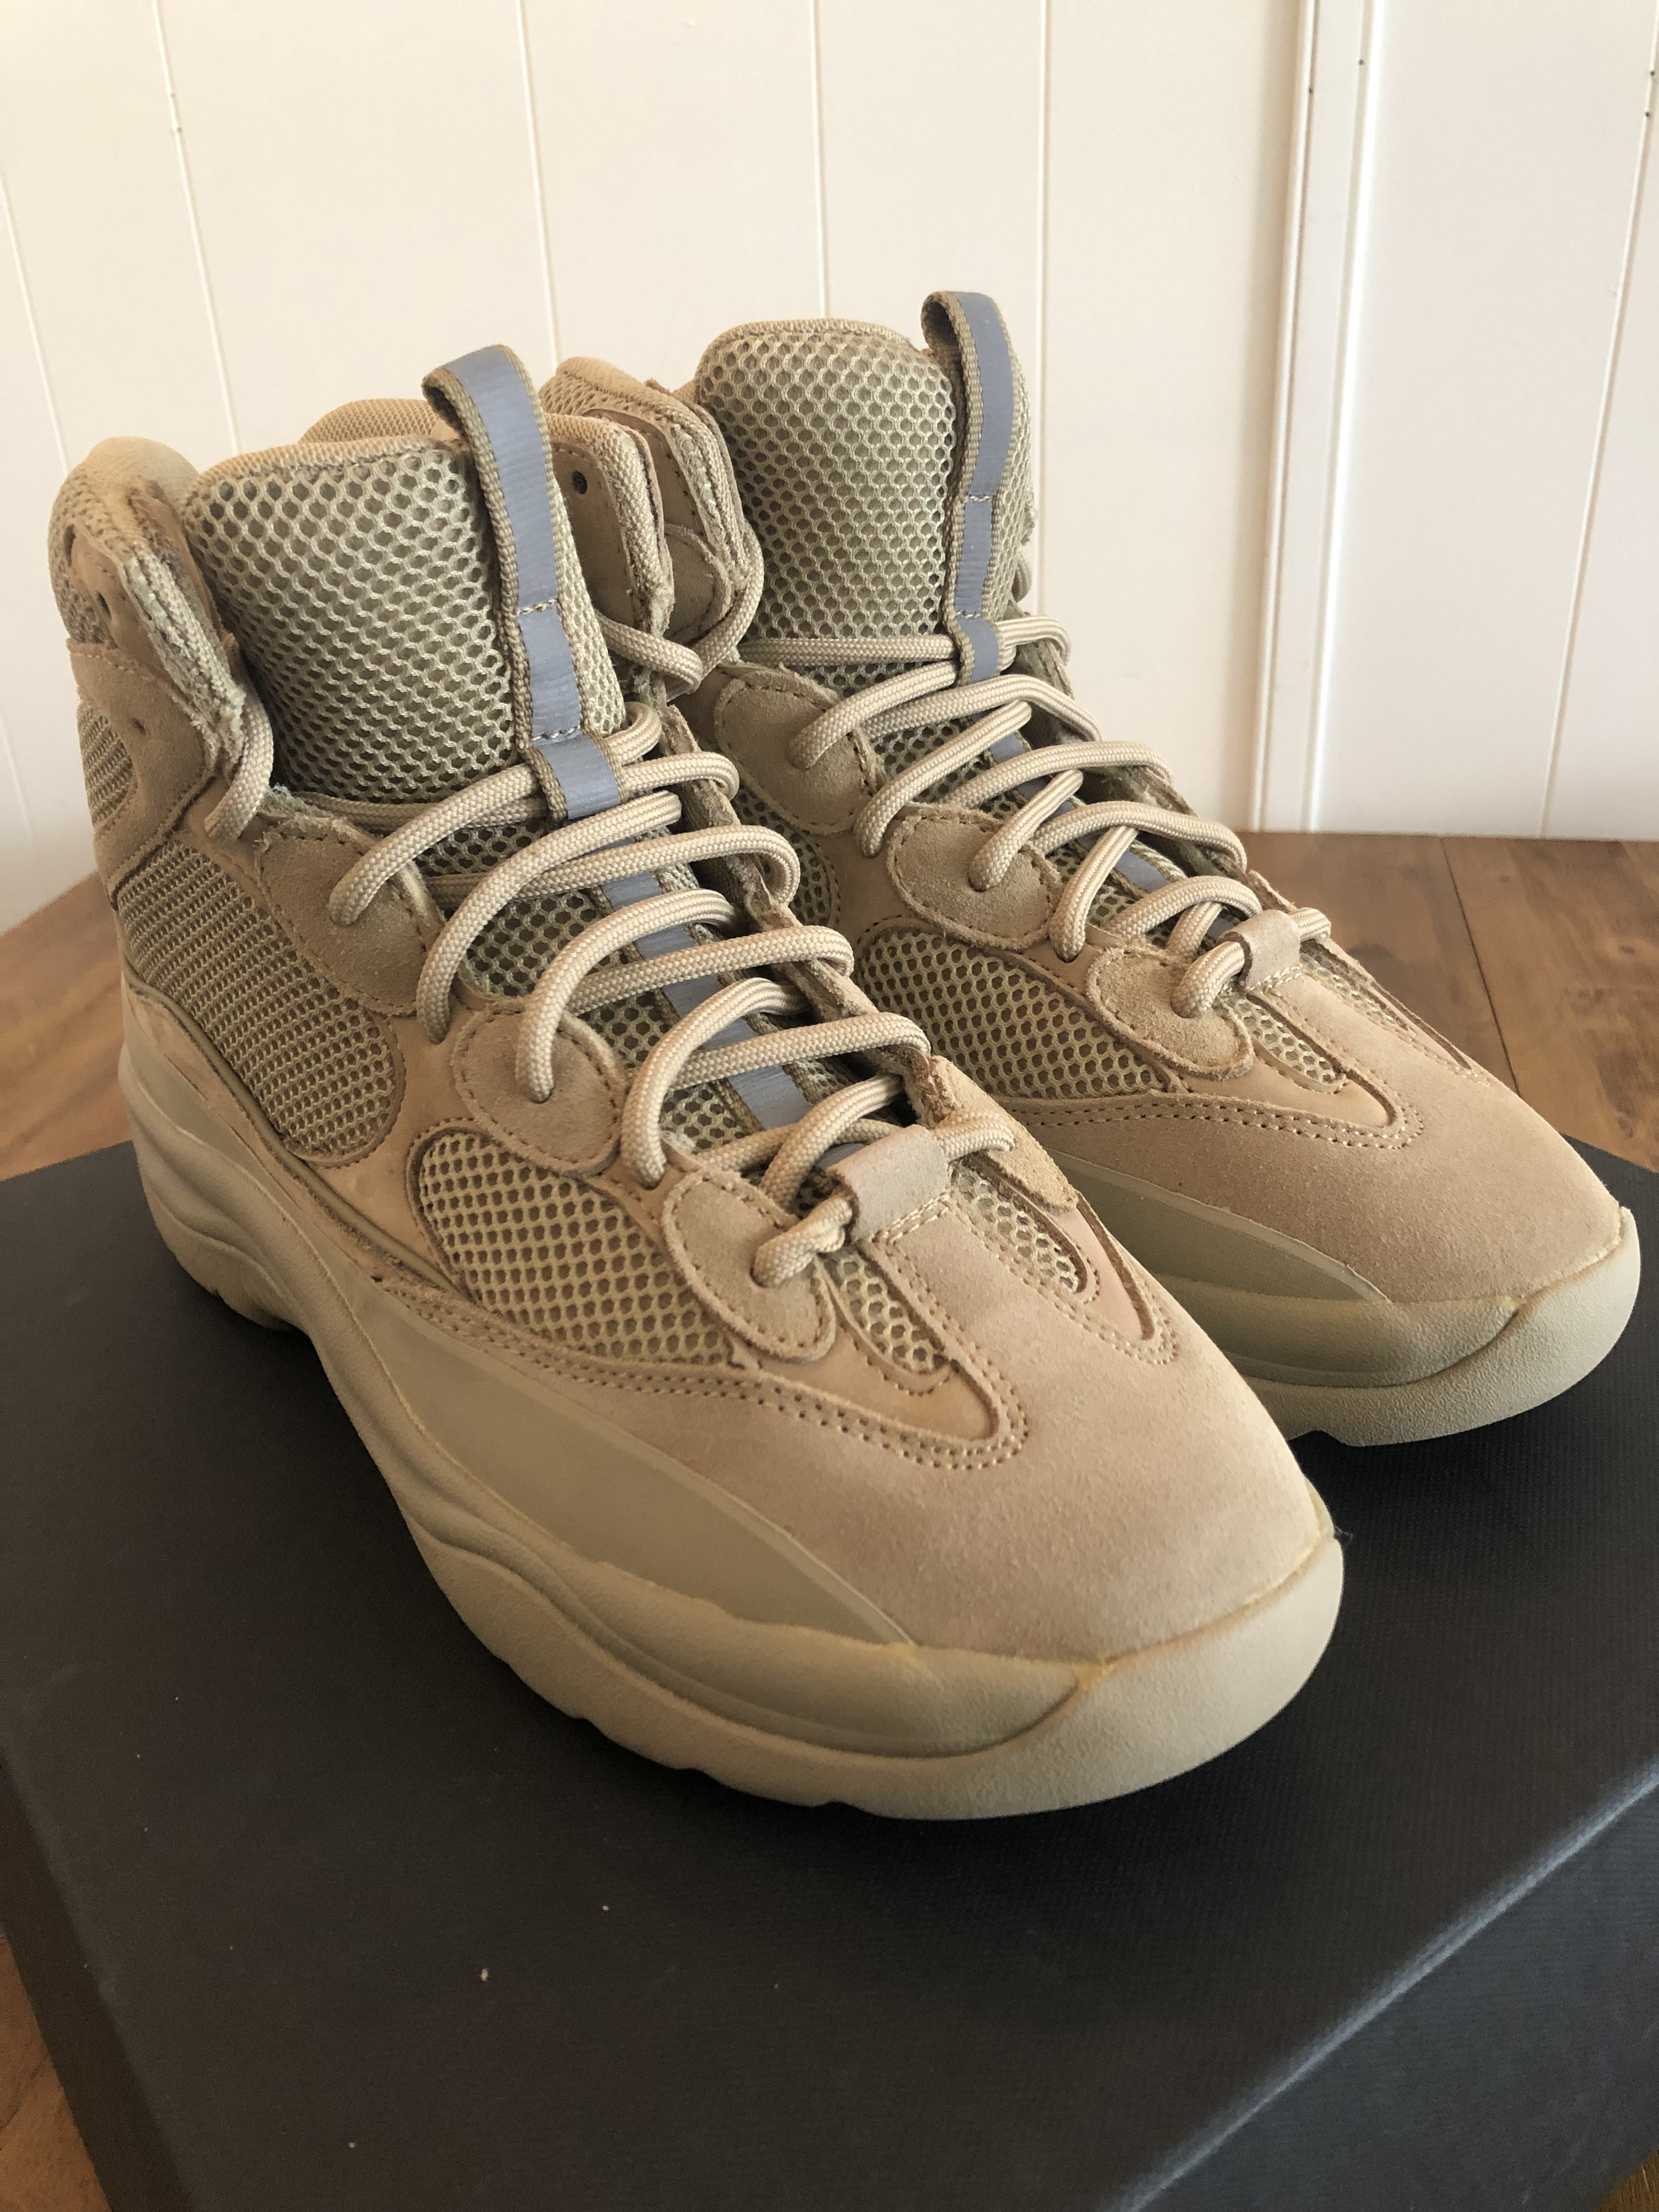 a27dc7f4e Yeezy Desert Rat Boot Taupe - Collection Of Rat Types